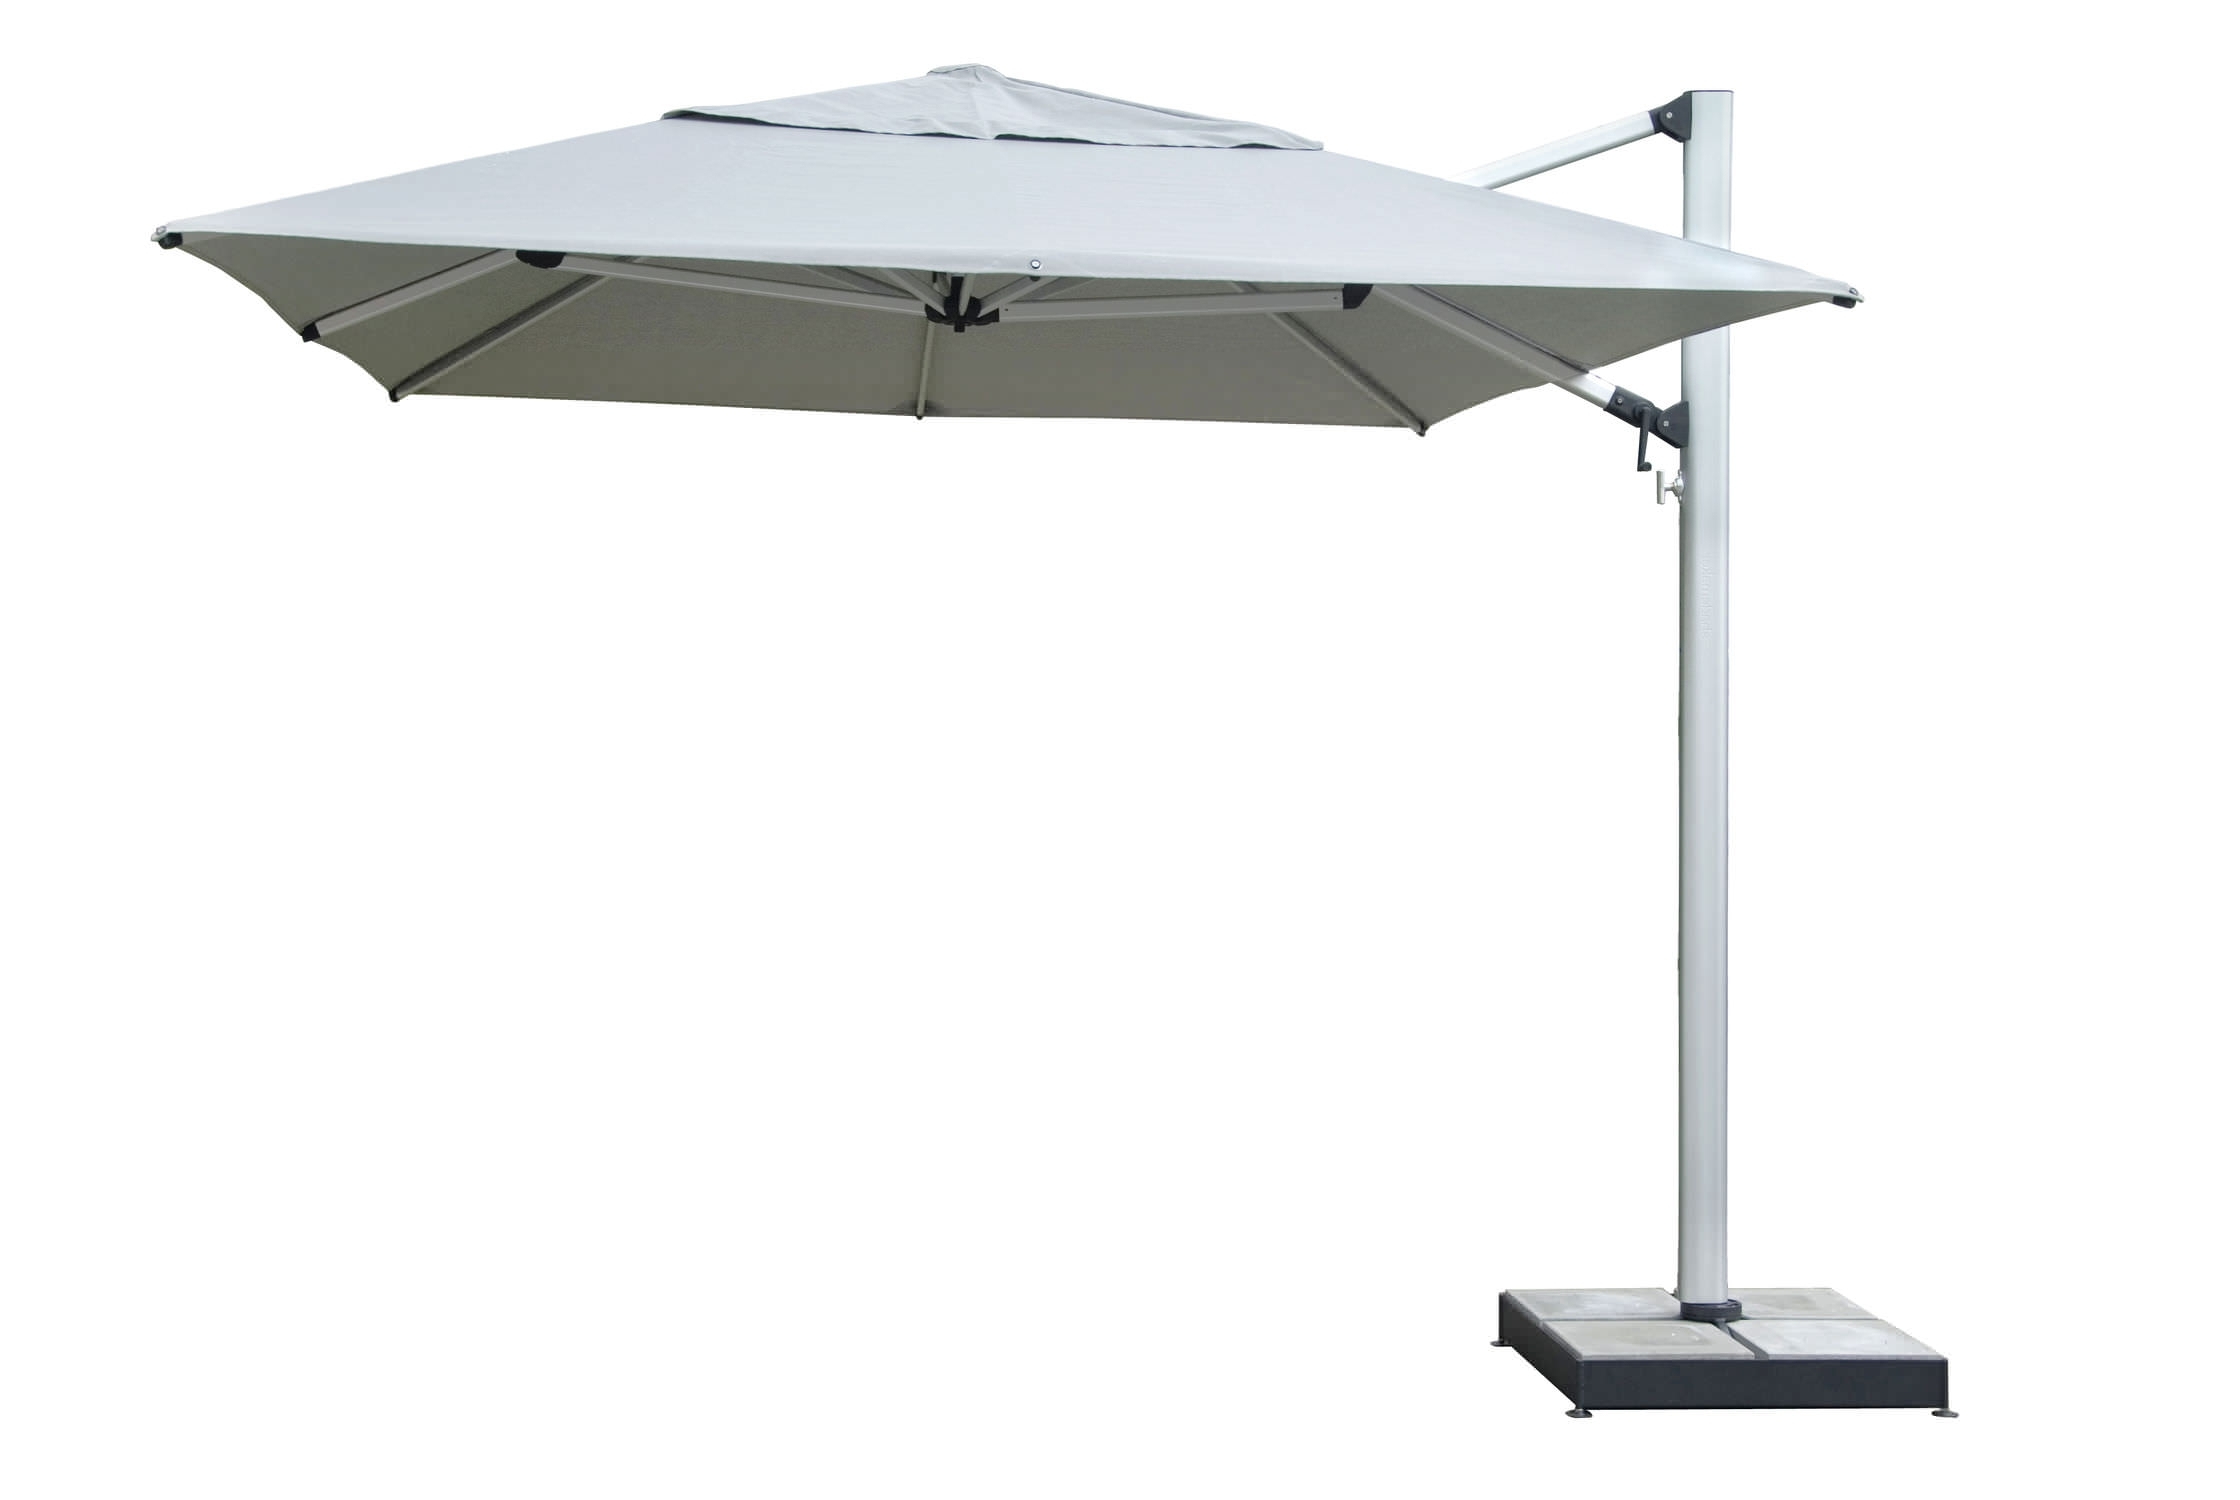 Most Current Furniture: Stainless Steel Patio Umbrella Patio Furniture And Inside White Patio Umbrellas (View 6 of 20)